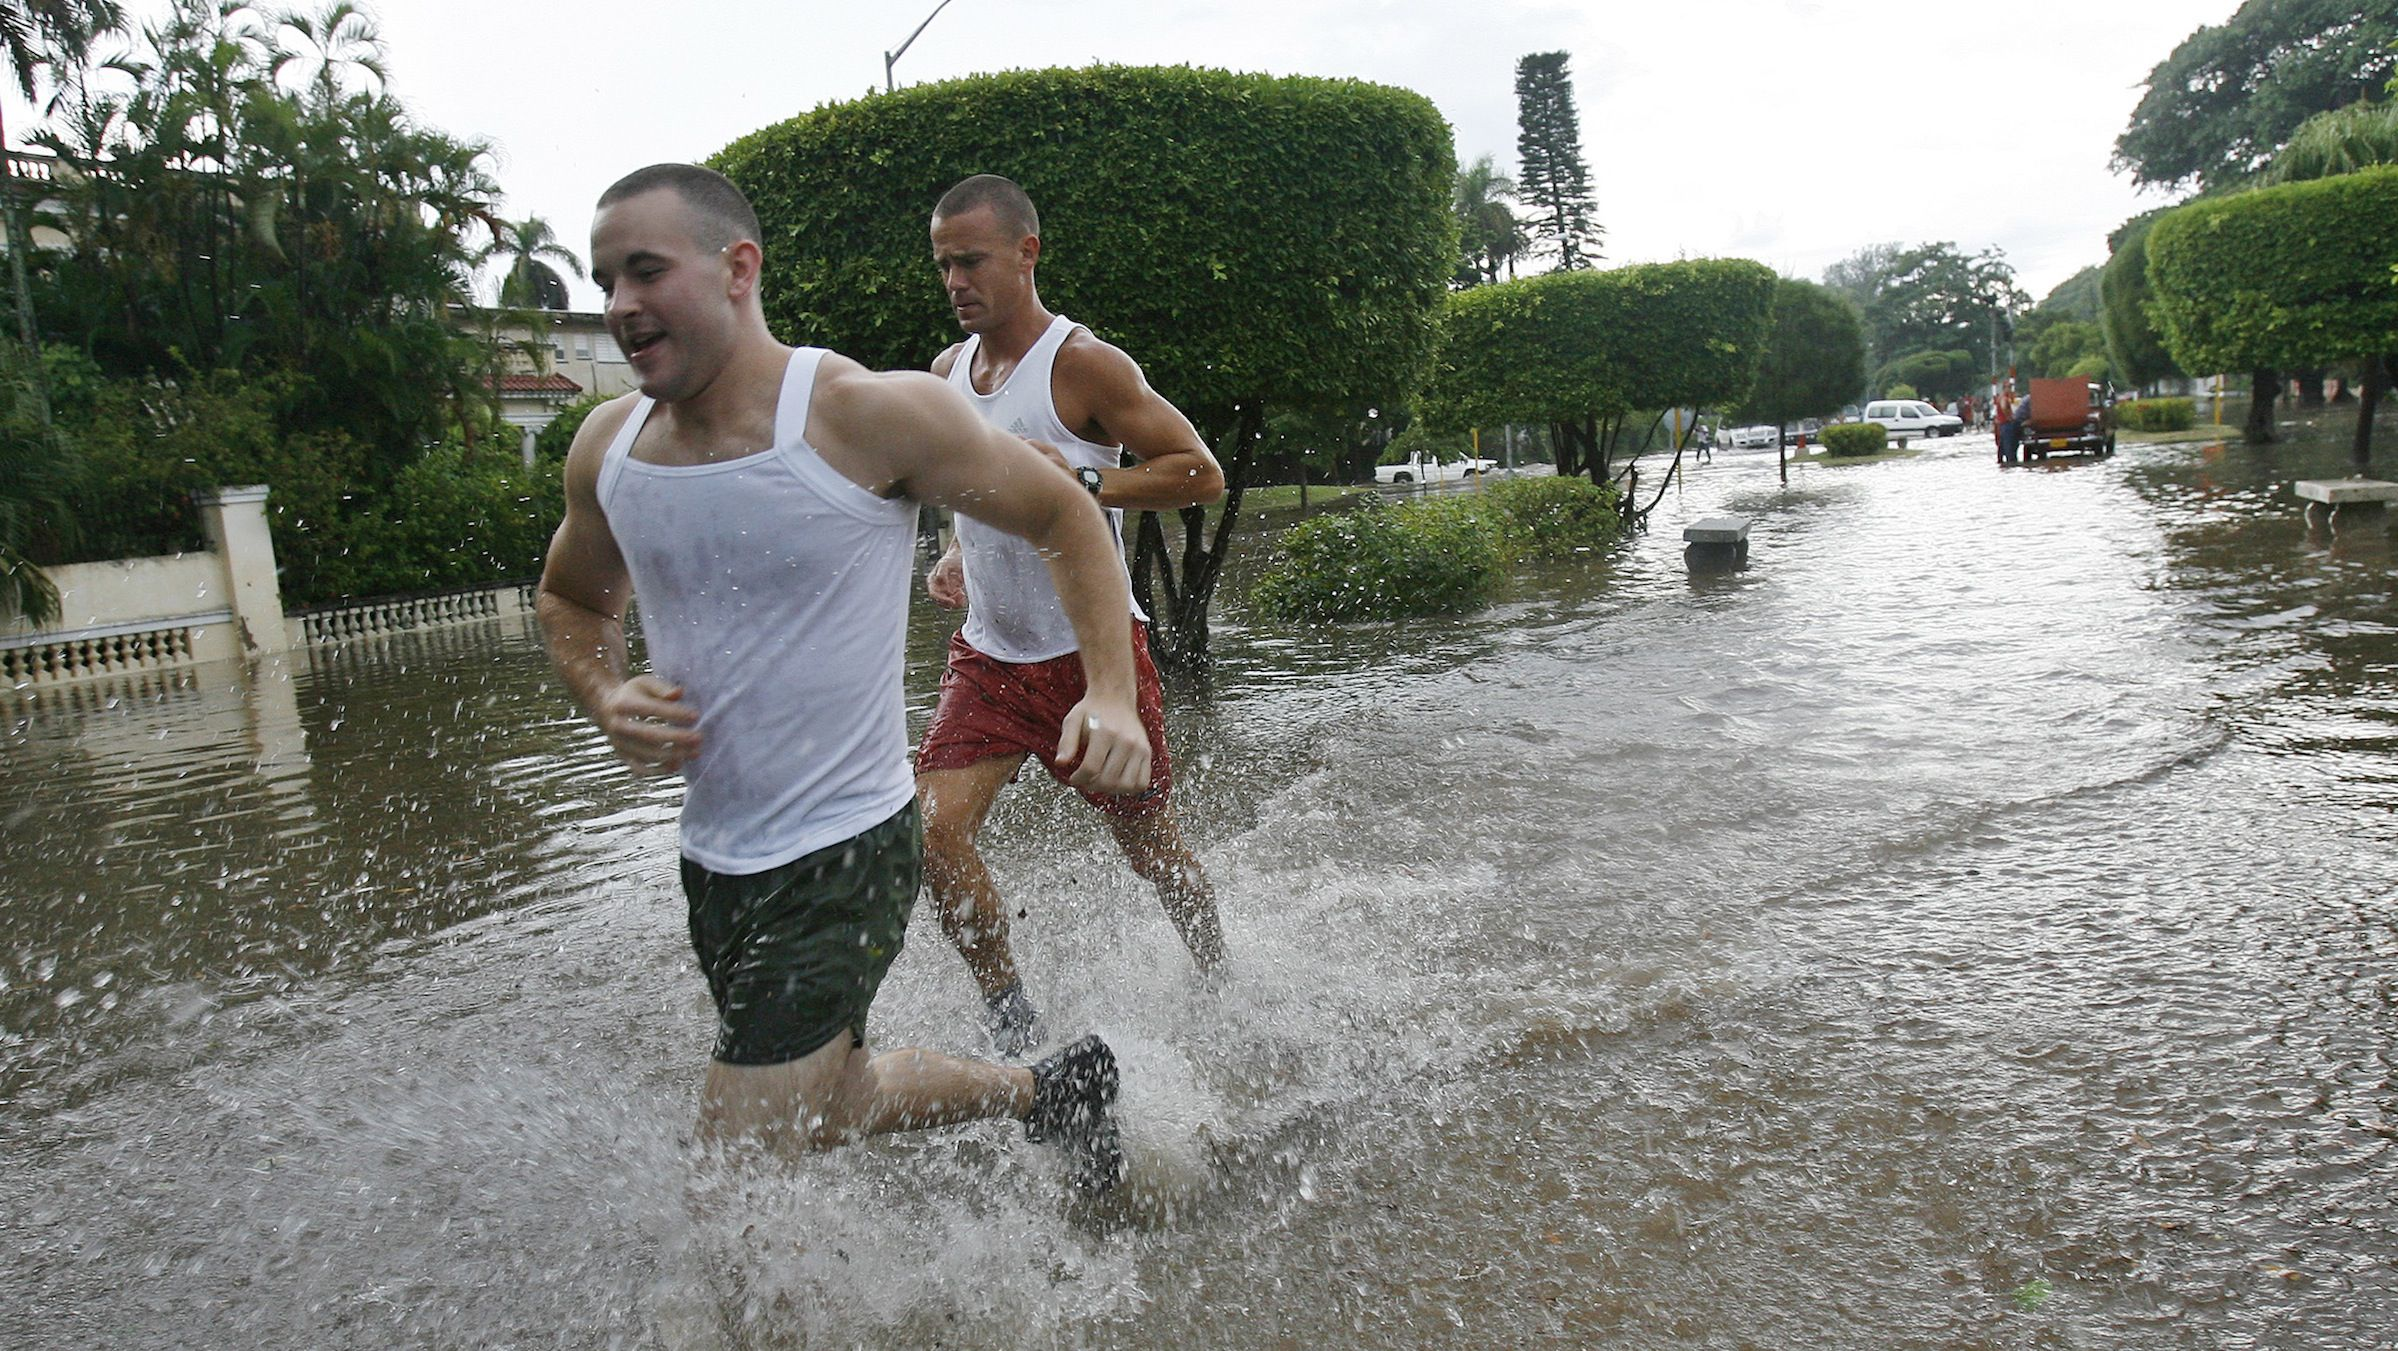 Joggers run through flooded streets after torrential rains hit Havana August 26, 2008. Weather forecasters predicted on Tuesday that Hurricane Gustav would skirt the western coast of Cuba and enter the Gulf of Mexico as a powerful Category 3 hurricane with winds in excess of 100 mph by Sunday. REUTERS/Claudia Daut (CUBA) - RTR21Q33